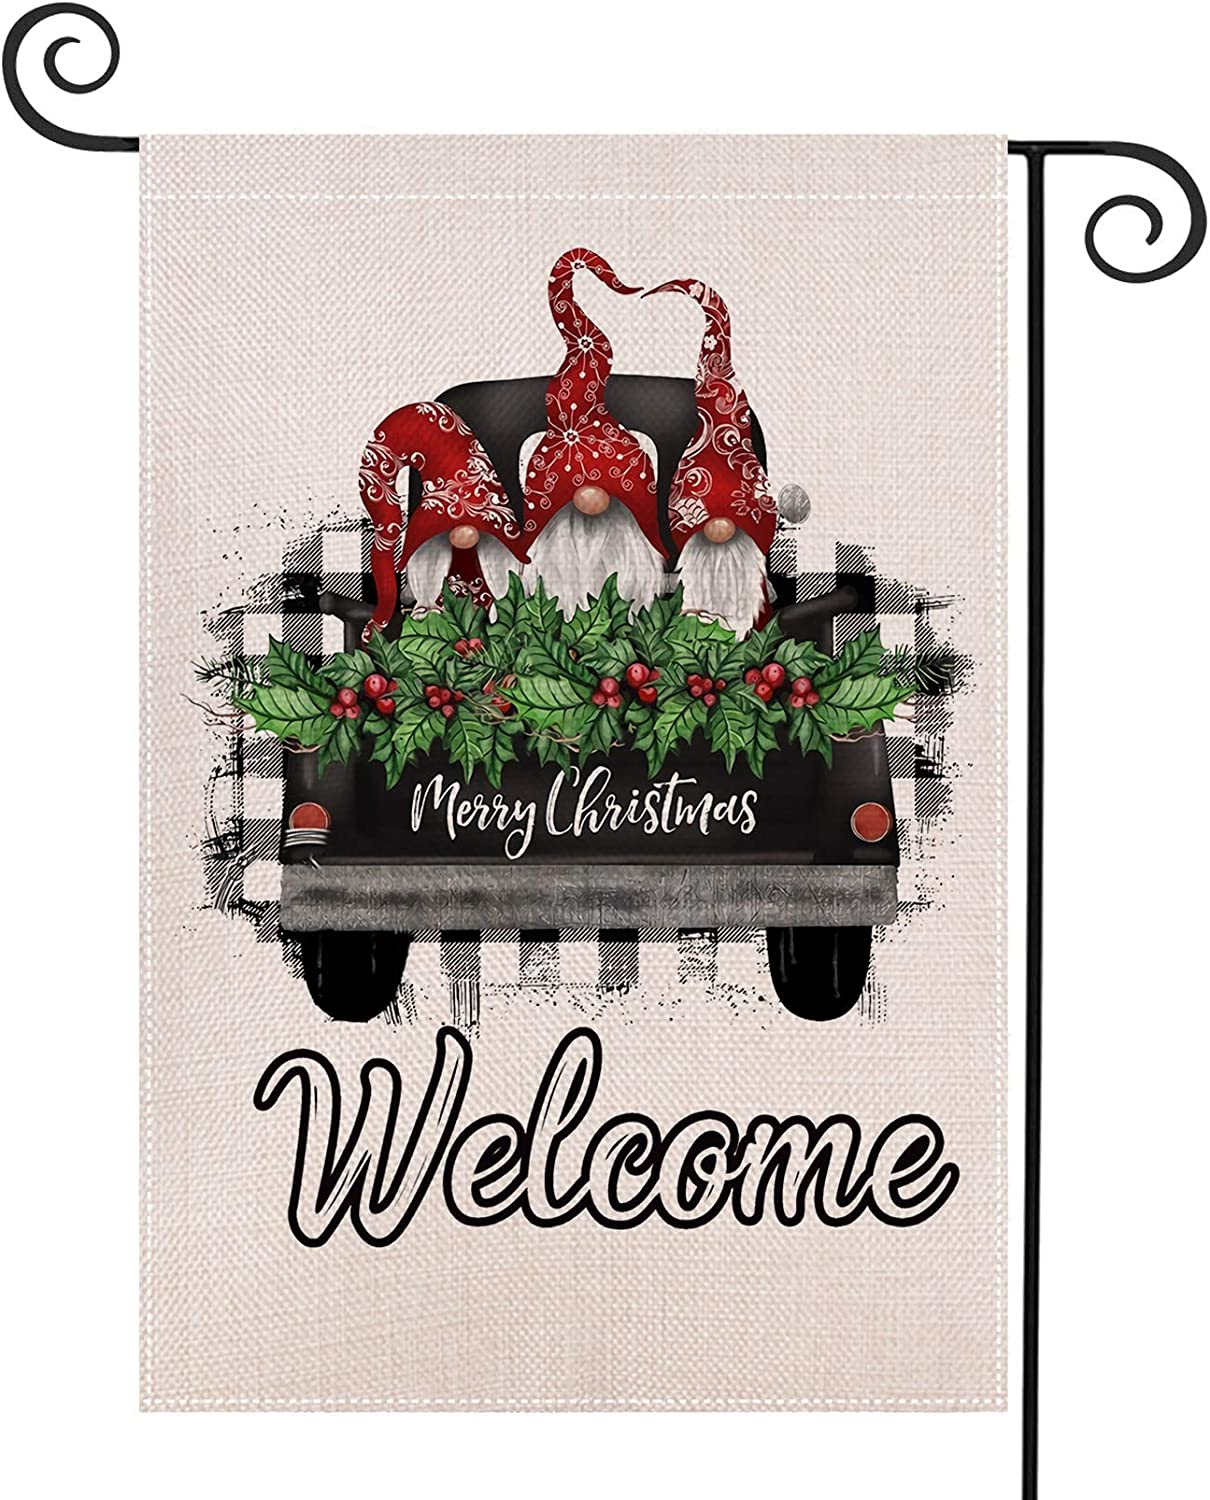 SHANGXING Merry Christmas Gnomes Garden Flag-11.8 x 7.8 Inch Double-Sided Printed Christmas Tree Farmhouse Xmas Yard Burlap Banner for Home & Outdoor Decoration (Car)